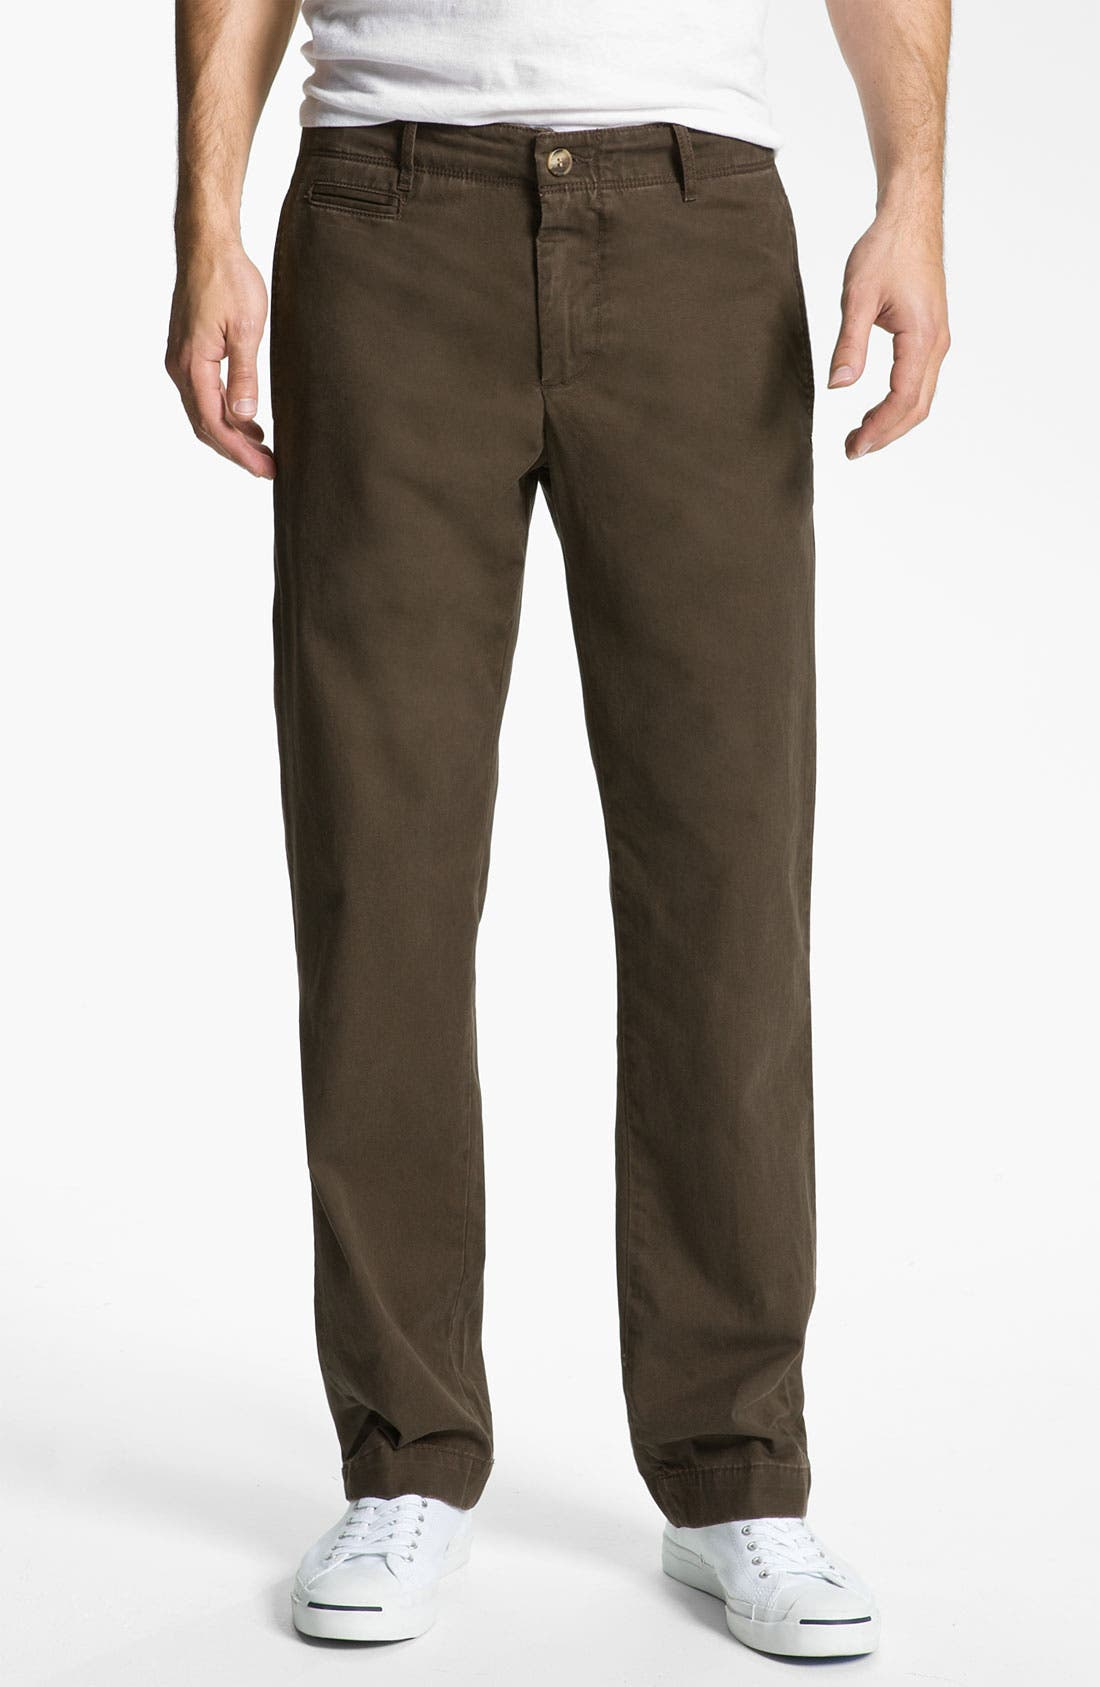 Alternate Image 1 Selected - Lucky Brand Chinos